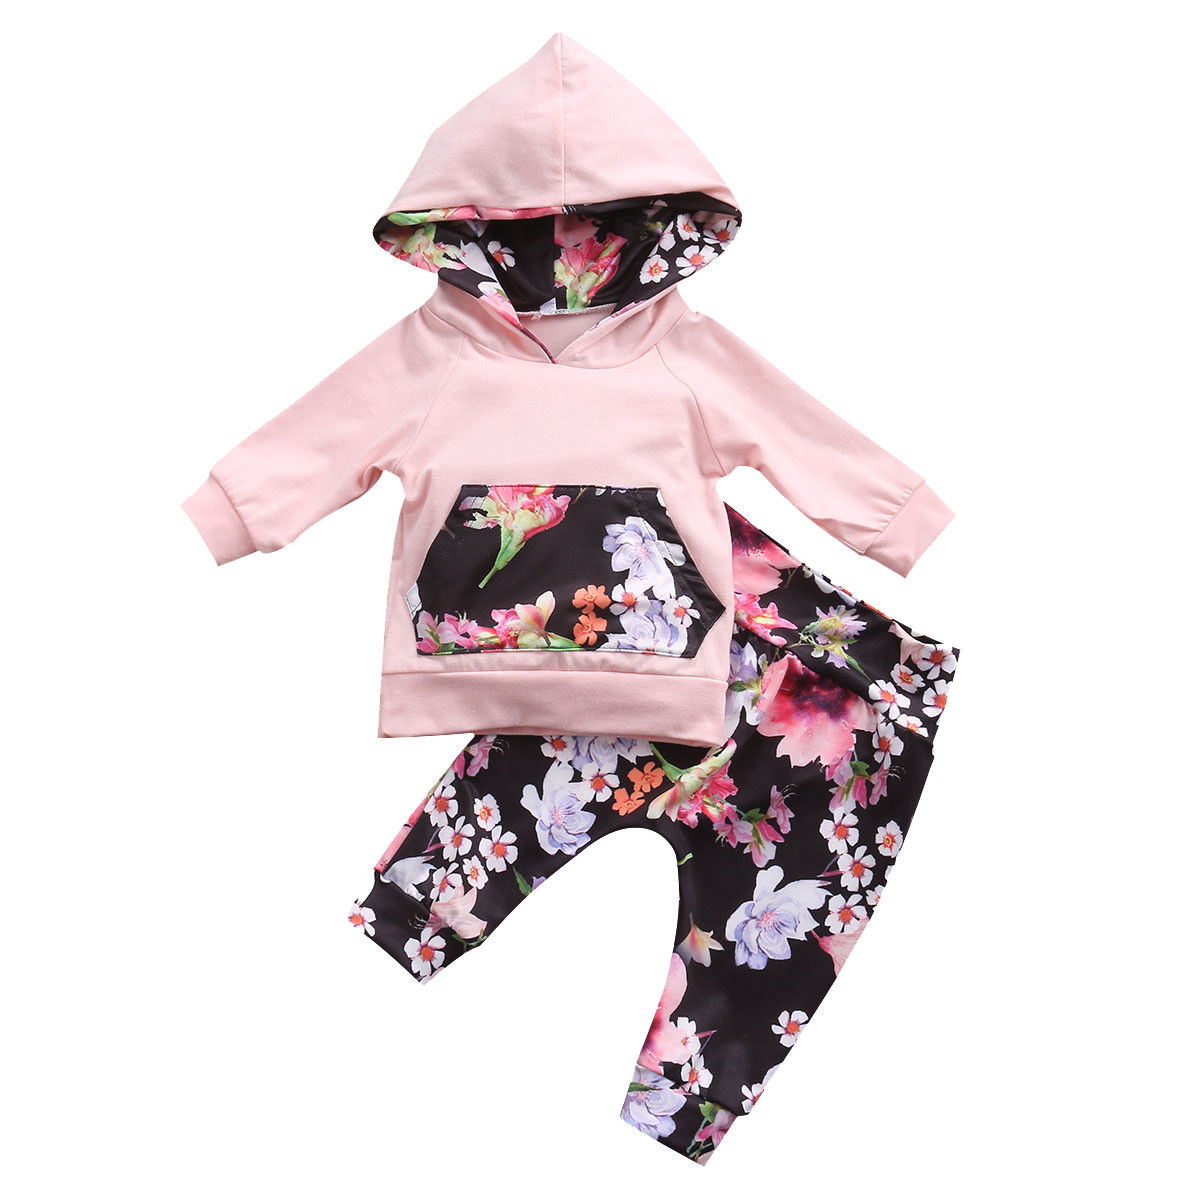 Infant Newborn Baby Girls Clothes Set Hooded Tops Long Sleeve T-shirt Floral Long Leggings Outfit Children Clothing Autumn 2PCs 2017 autumn halloween pumpkin baby clothes newborn infant boy girl long sleeve romper tops leggings pants hat outfit 2pcs